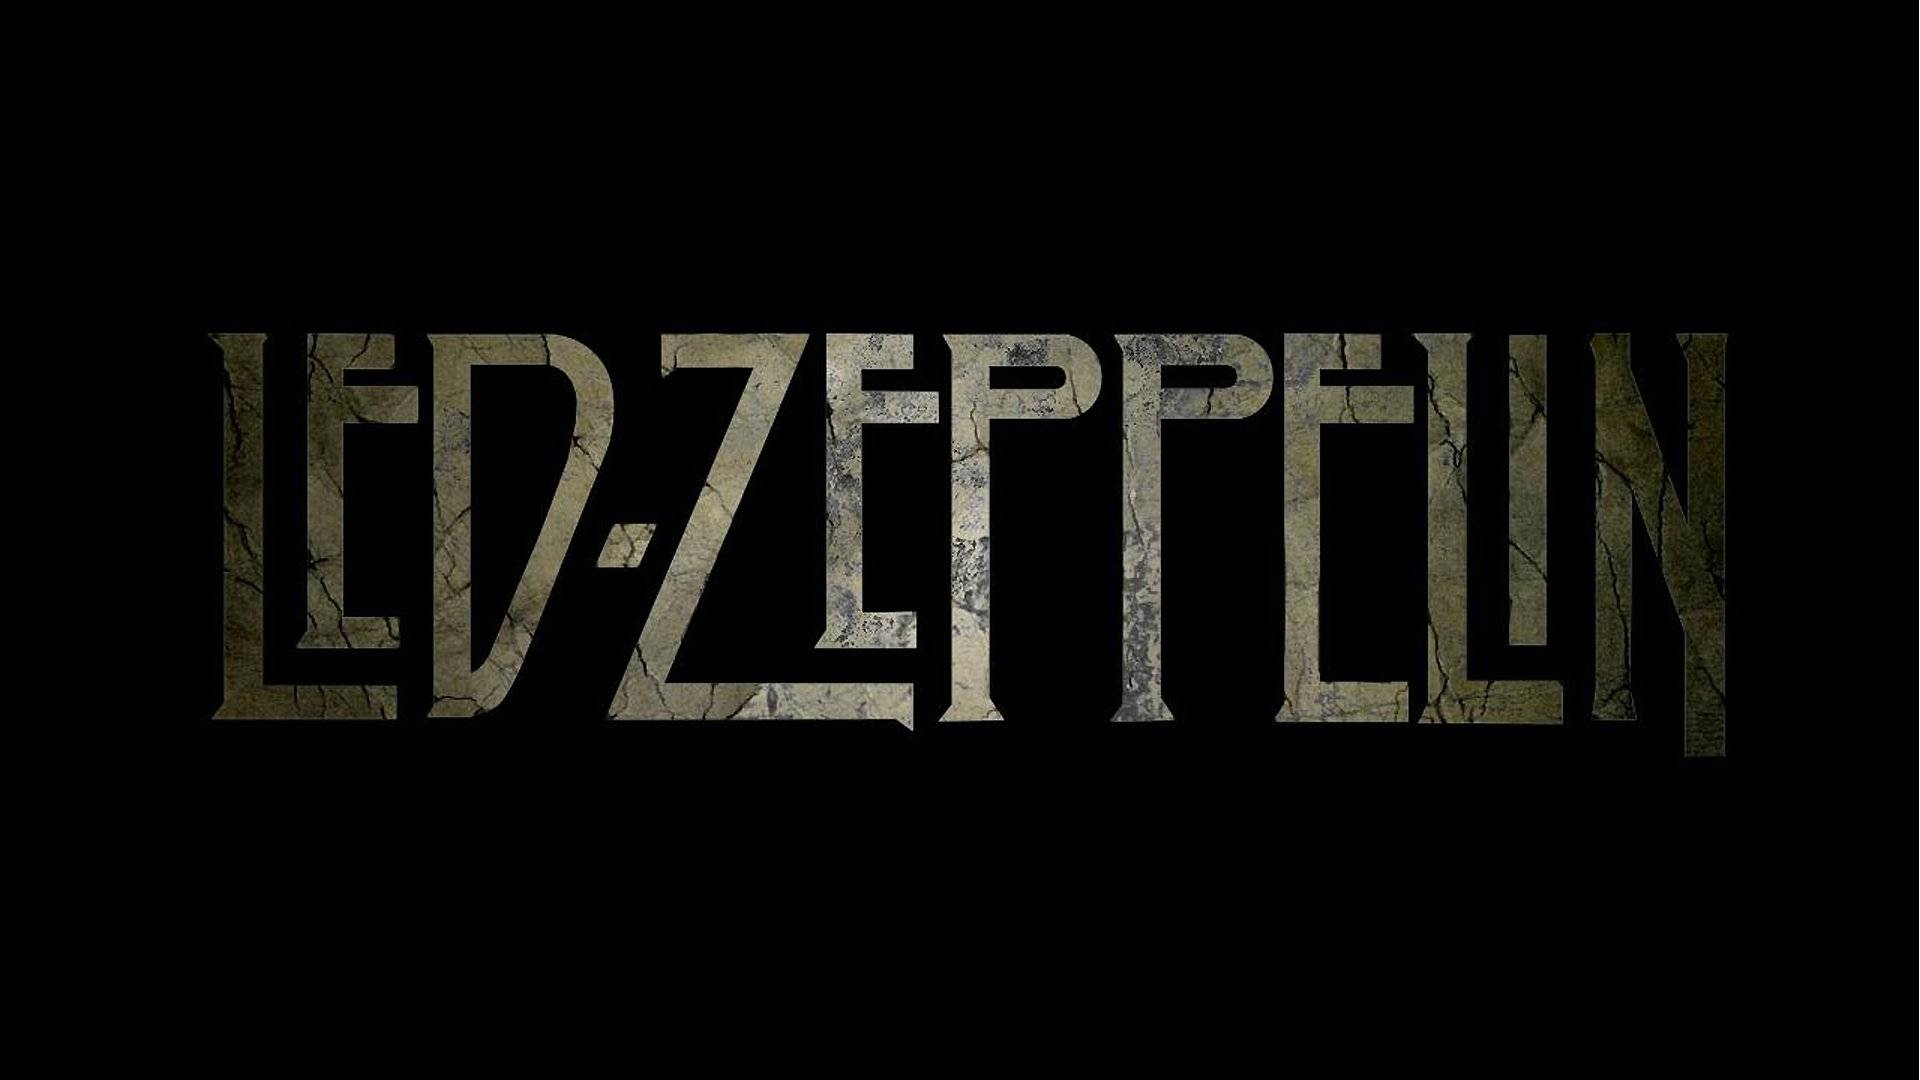 48 Led Zeppelin Hd Wallpapers | Backgrounds – Wallpaper Abyss Intended For Newest Led Zeppelin 3d Wall Art (View 6 of 20)